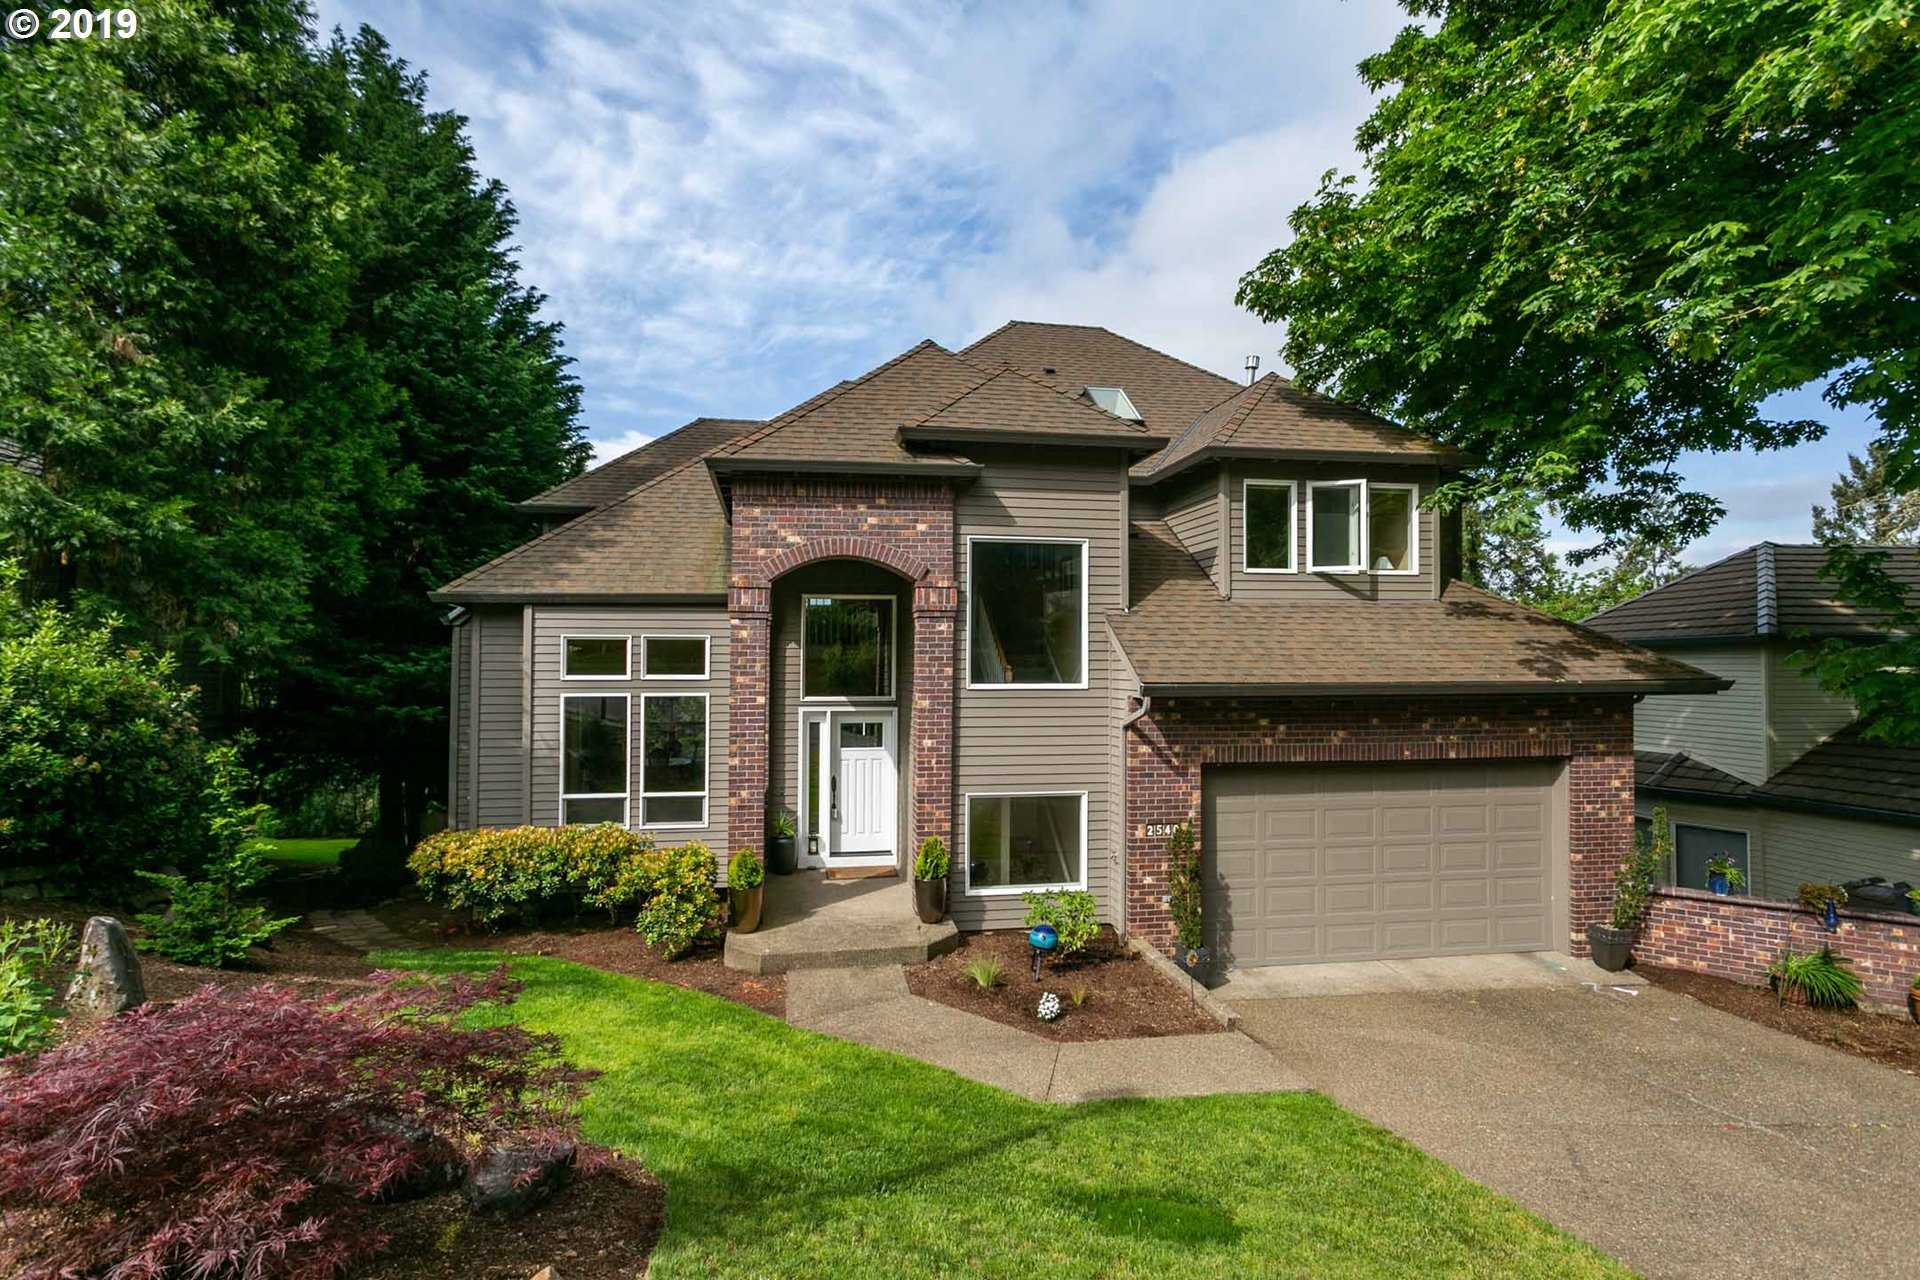 $648,950 - 4Br/4Ba -  for Sale in West Linn